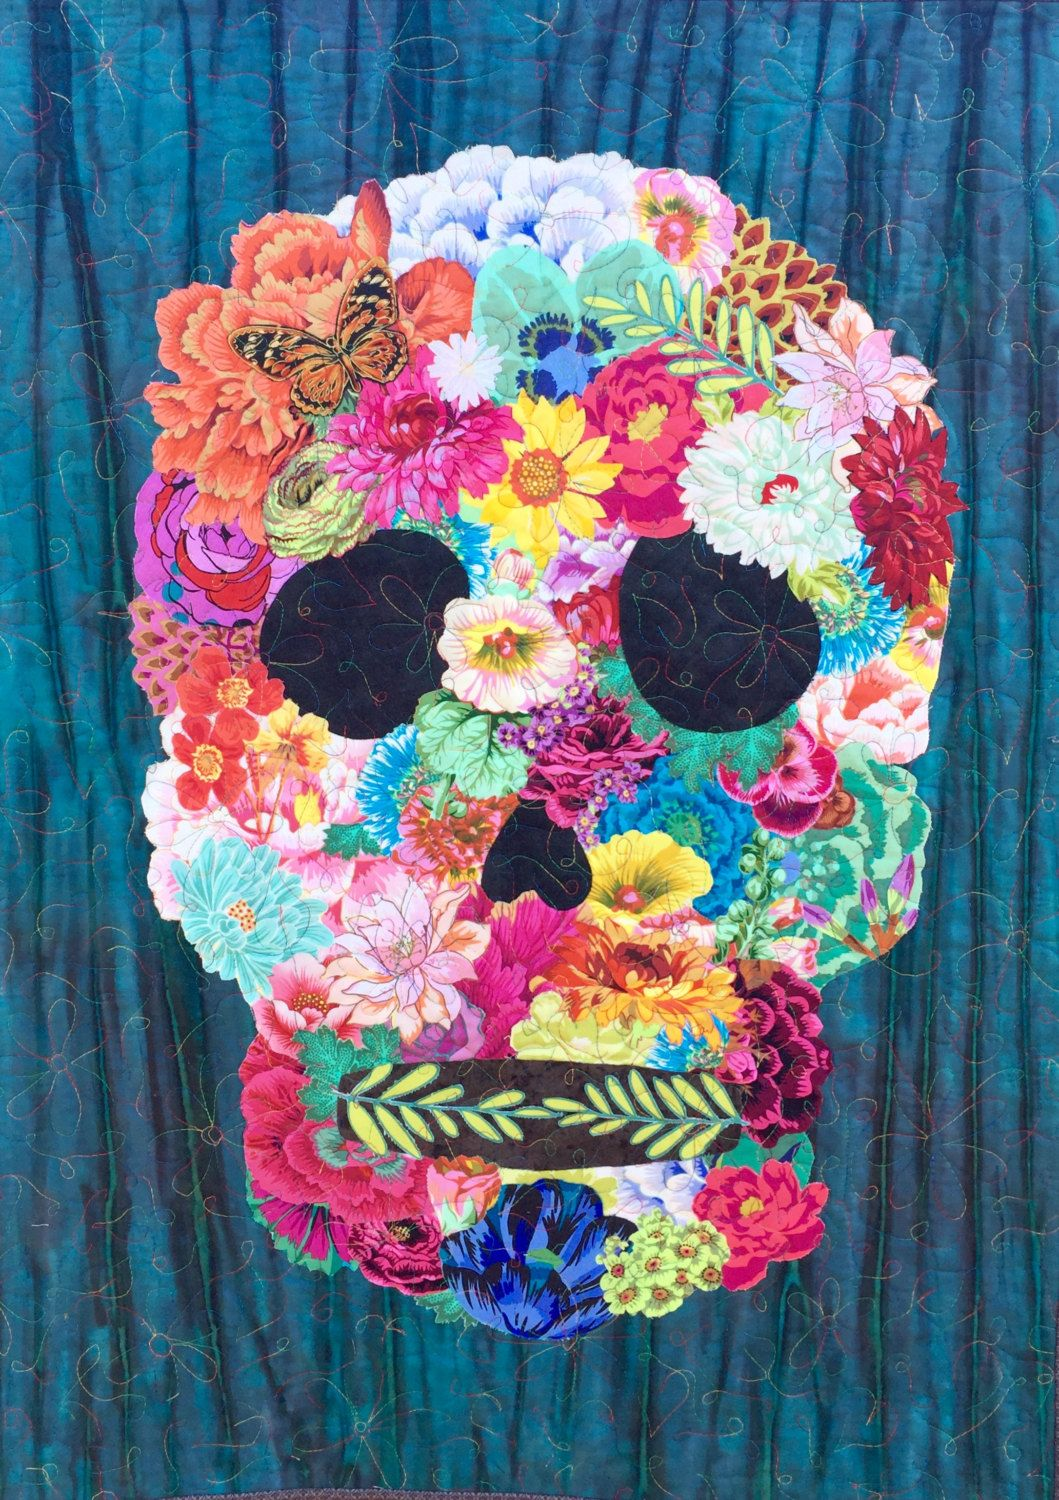 Sugar Skull Quilt : sugar, skull, quilt, Sugar, Skull, Quilt, Pattern/skull, Pattern:, Golgotha, Quilts,, Flower, Collage